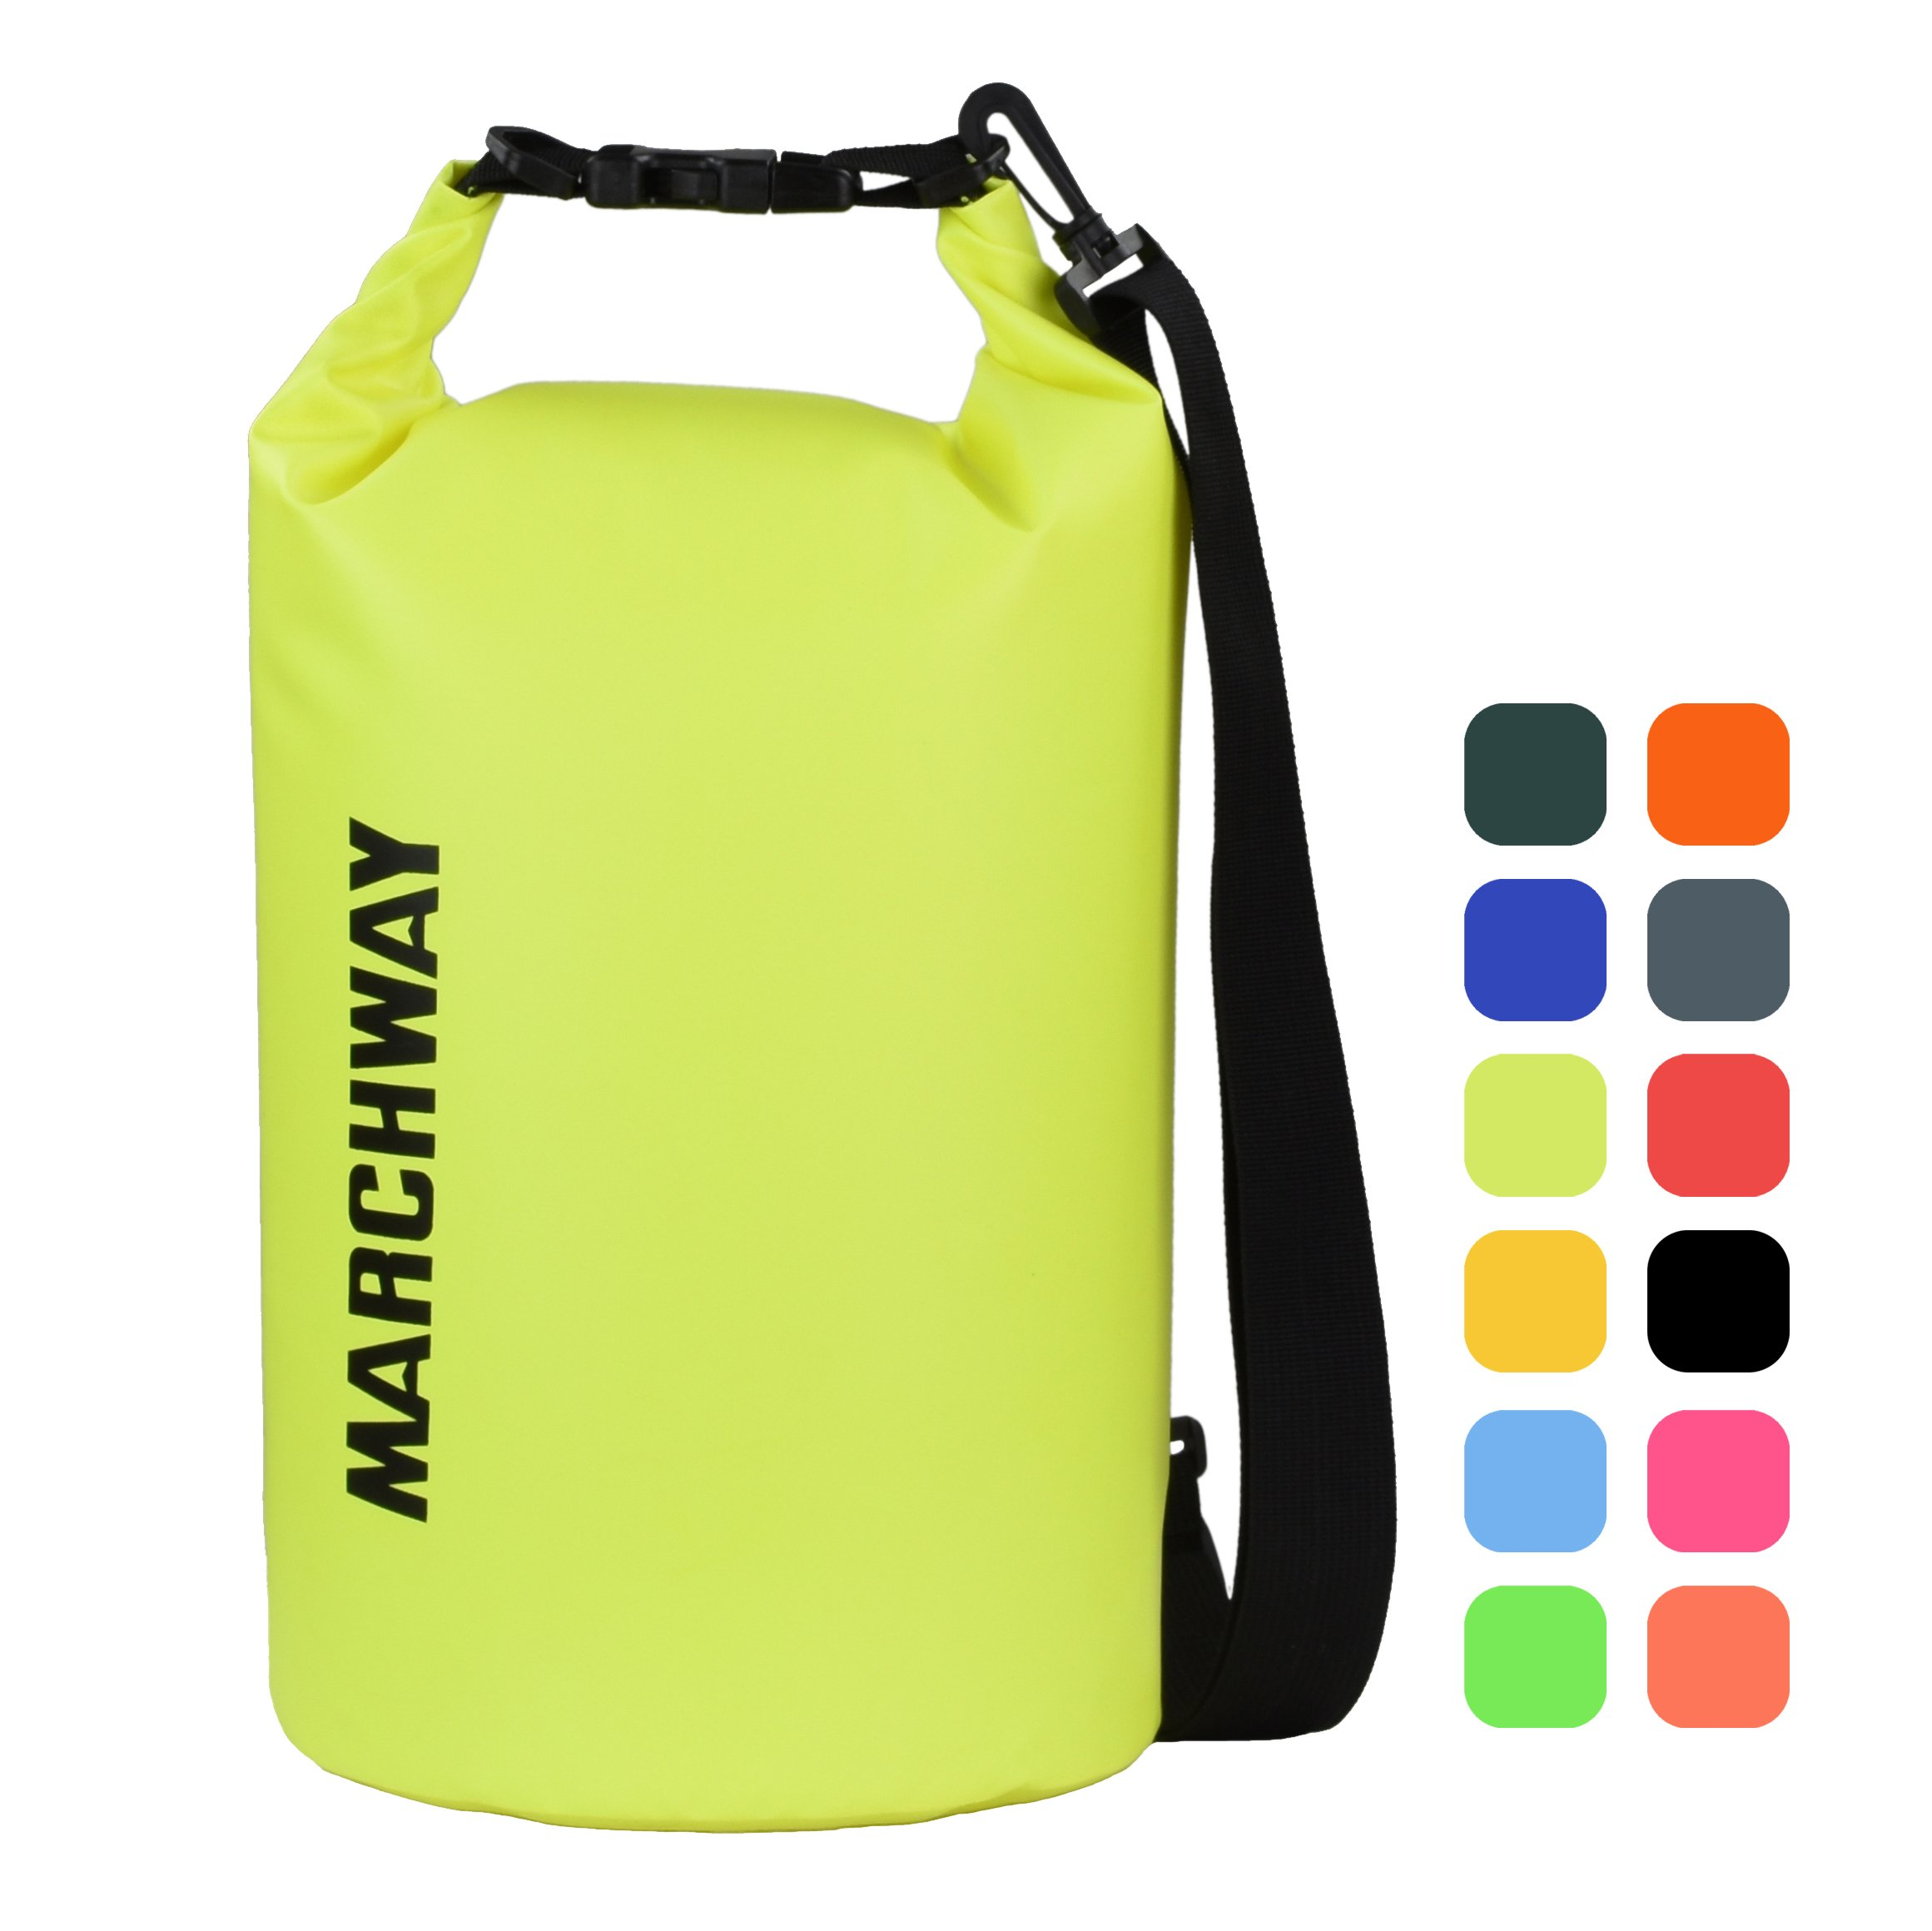 MARCHWAY Floating Waterproof Dry Bag 5L/10L/20L/30L, Roll Top Sack Keeps Gear Dry for Kayaking, Rafting, Boating, Swimming, Camping, Hiking, Beach, Fishing (Bright Yellow, 10L) by MARCHWAY